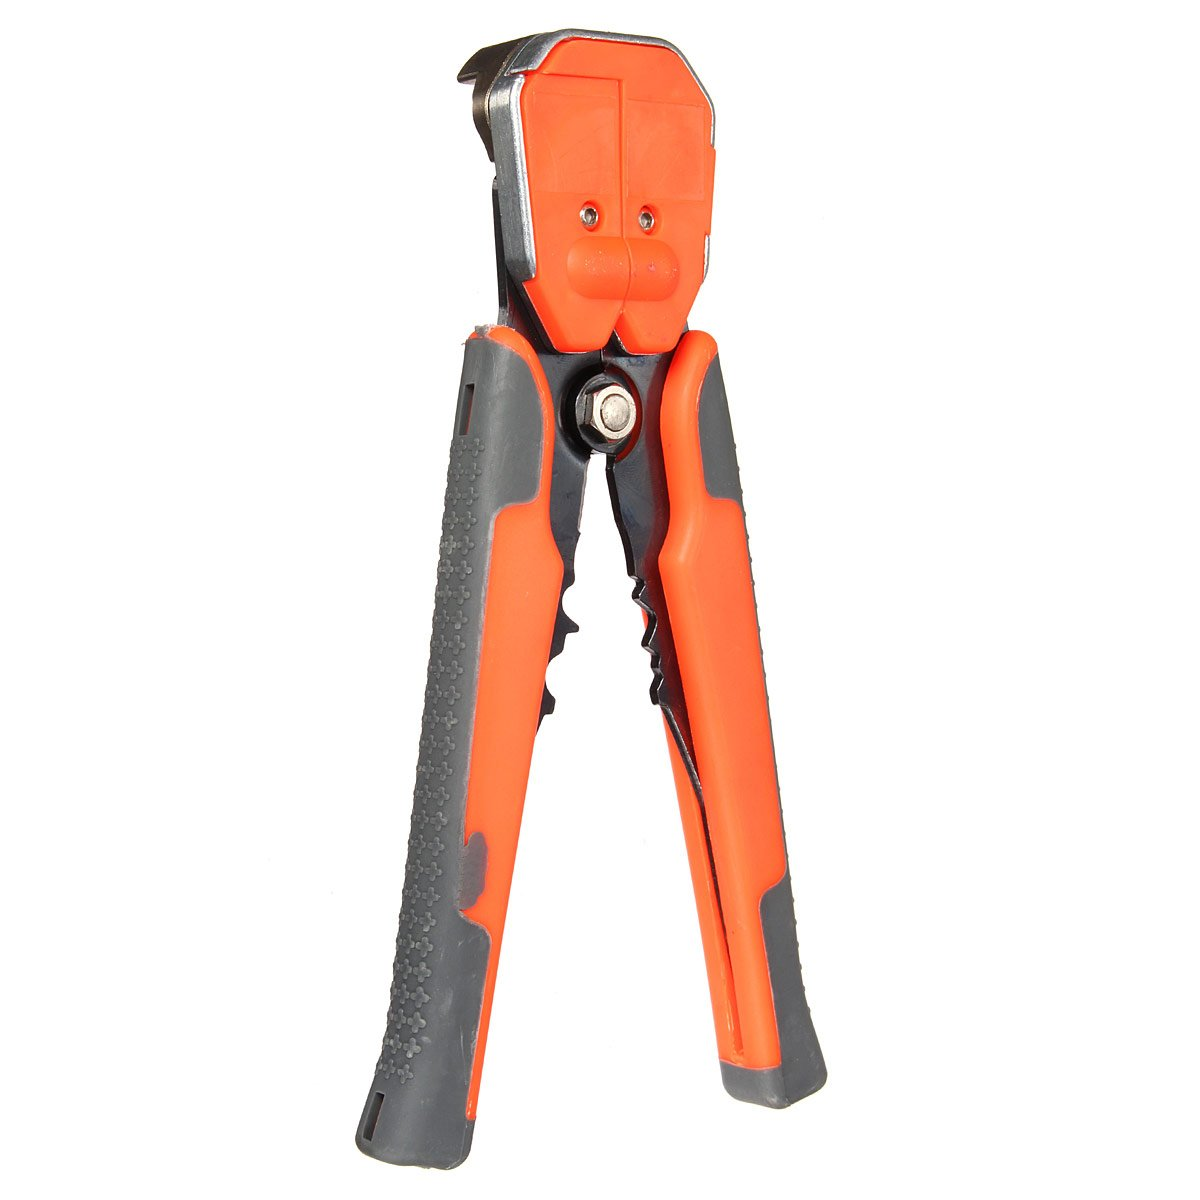 Agile-shop Professional Multifunction Automatic Wire Cutter Stripper Crimper Pliers Terminal Tool by Agile-shop (Image #6)